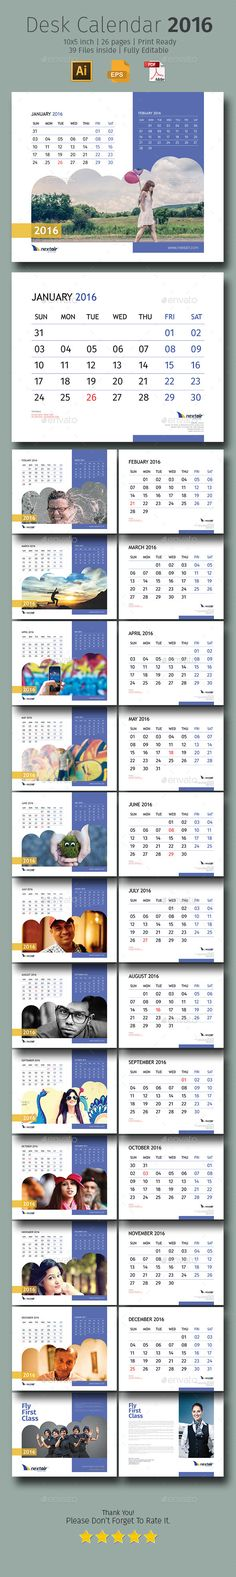 2016 Desk Calendar #design Download: http://graphicriver.net/item/2016-desk-calendar/12612192?ref=ksioks